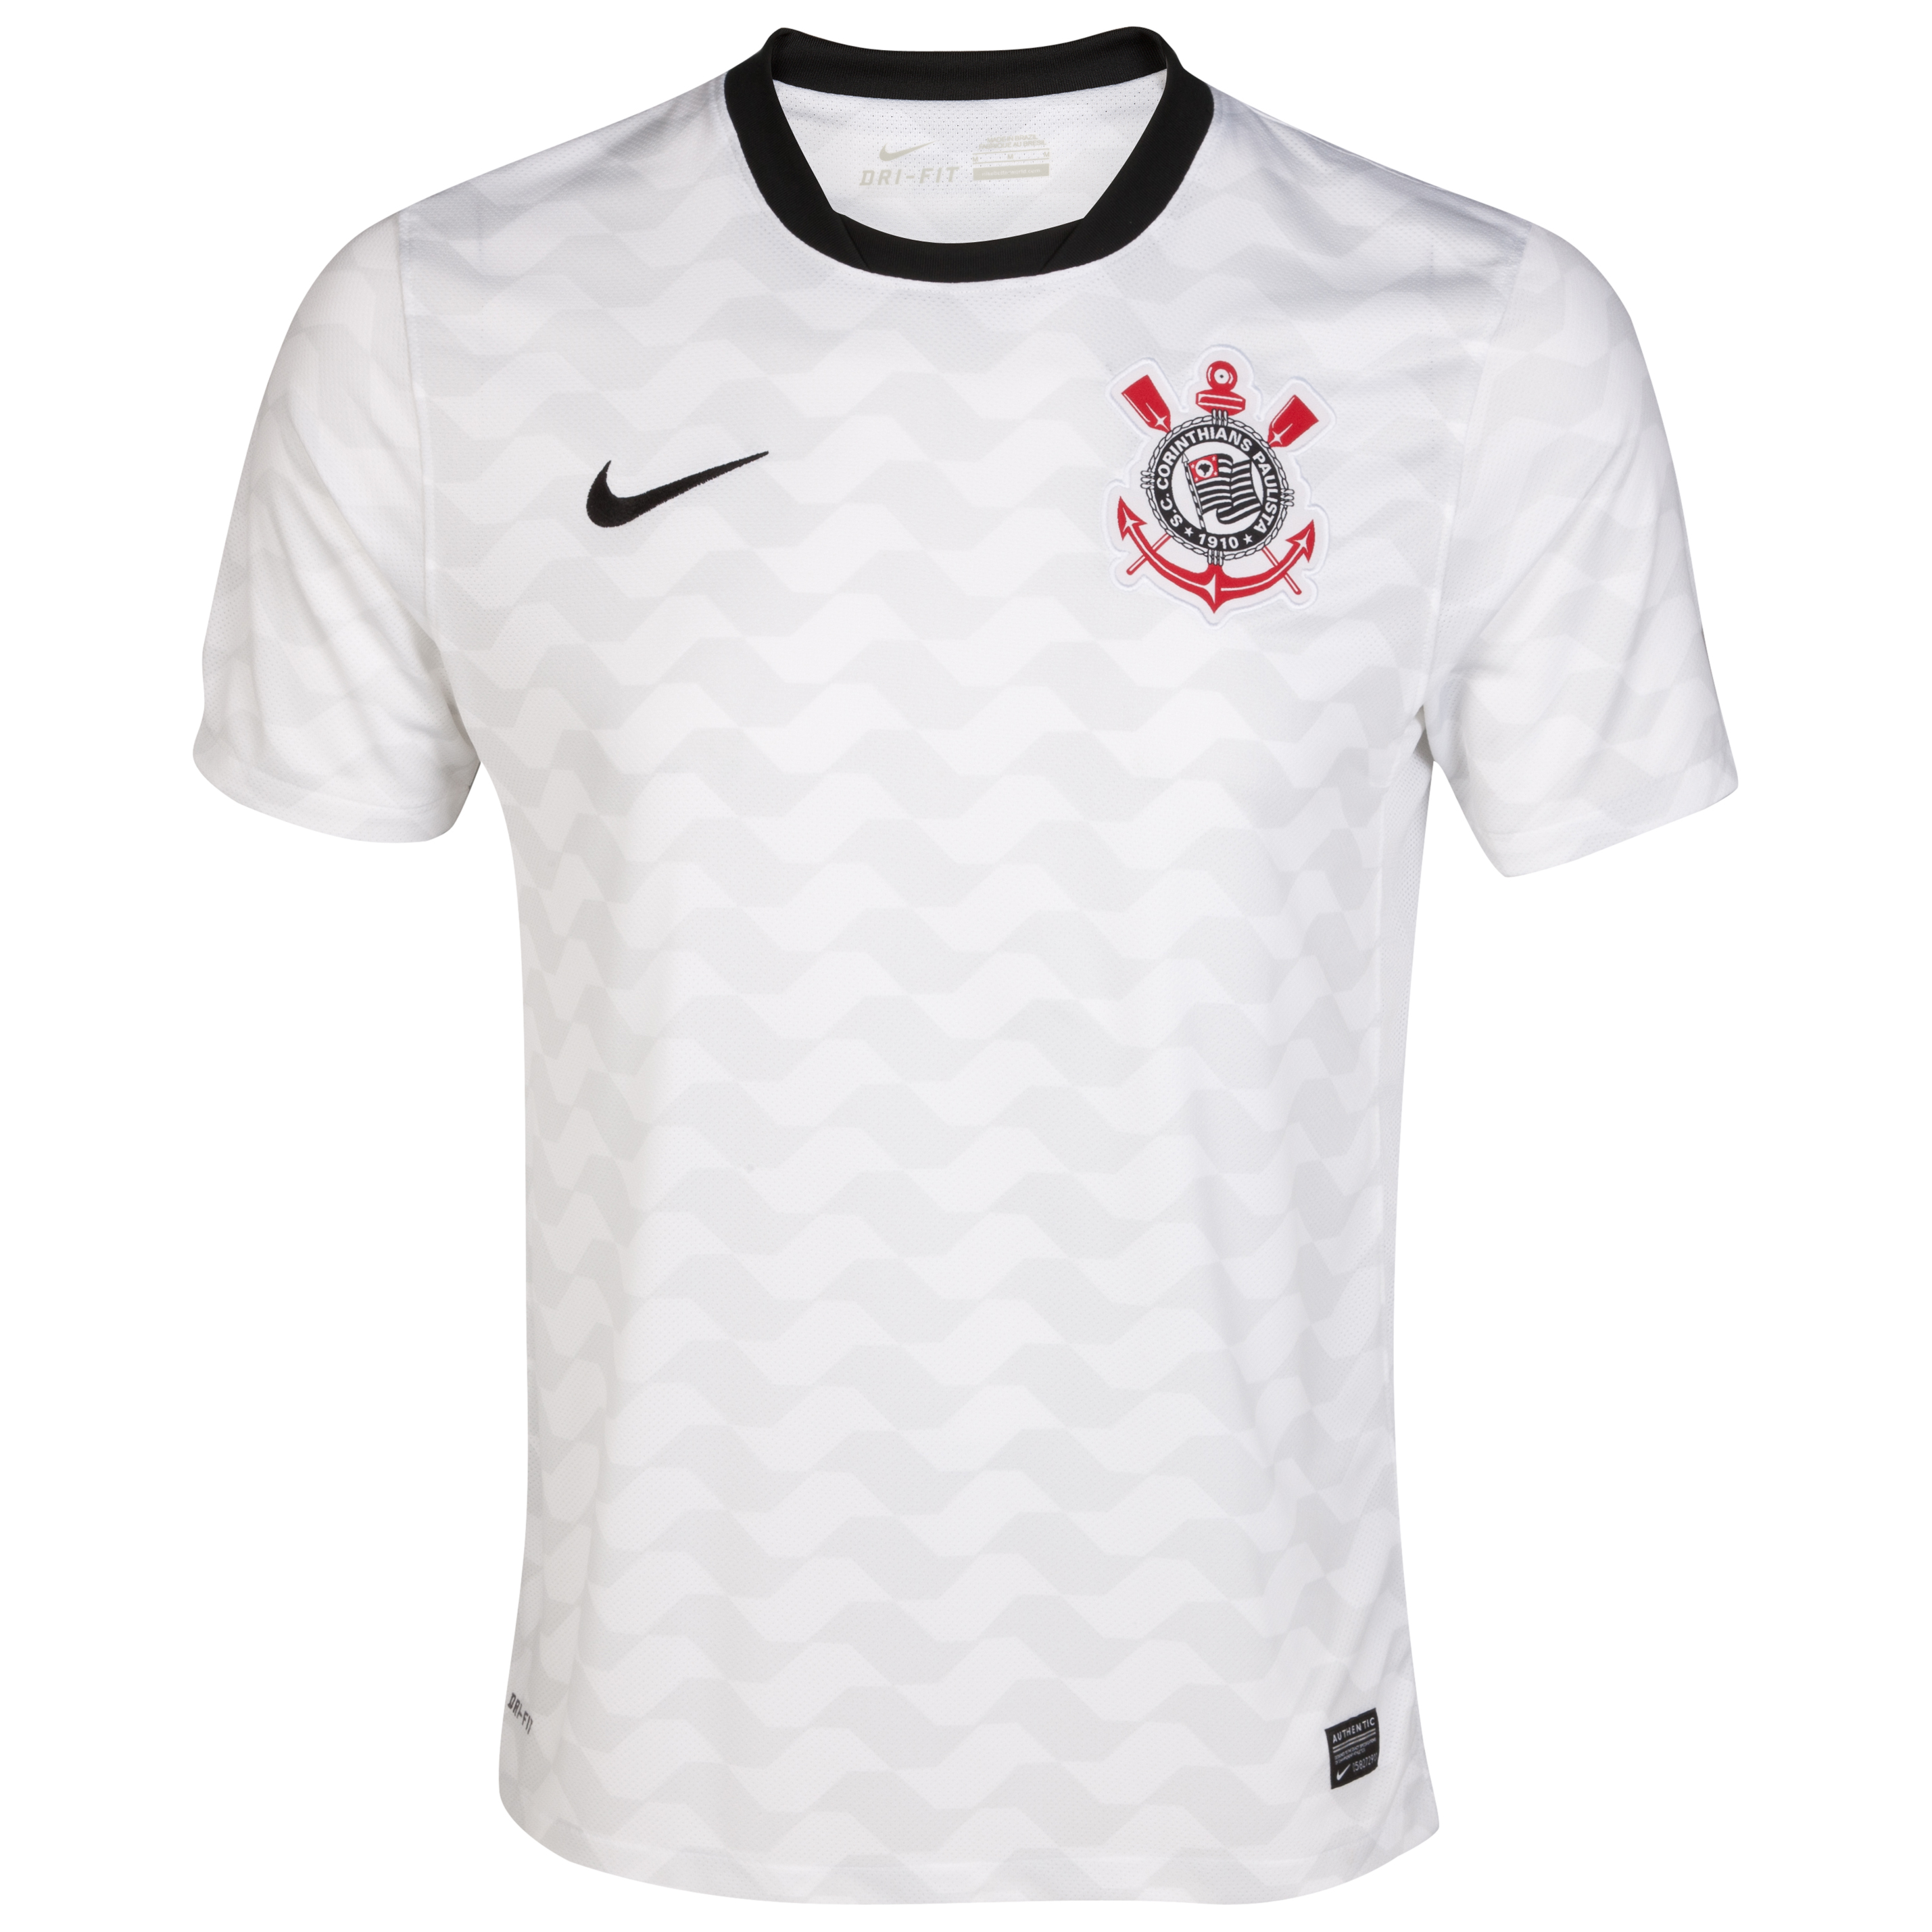 Corinthians 2012/13 Home Shirt